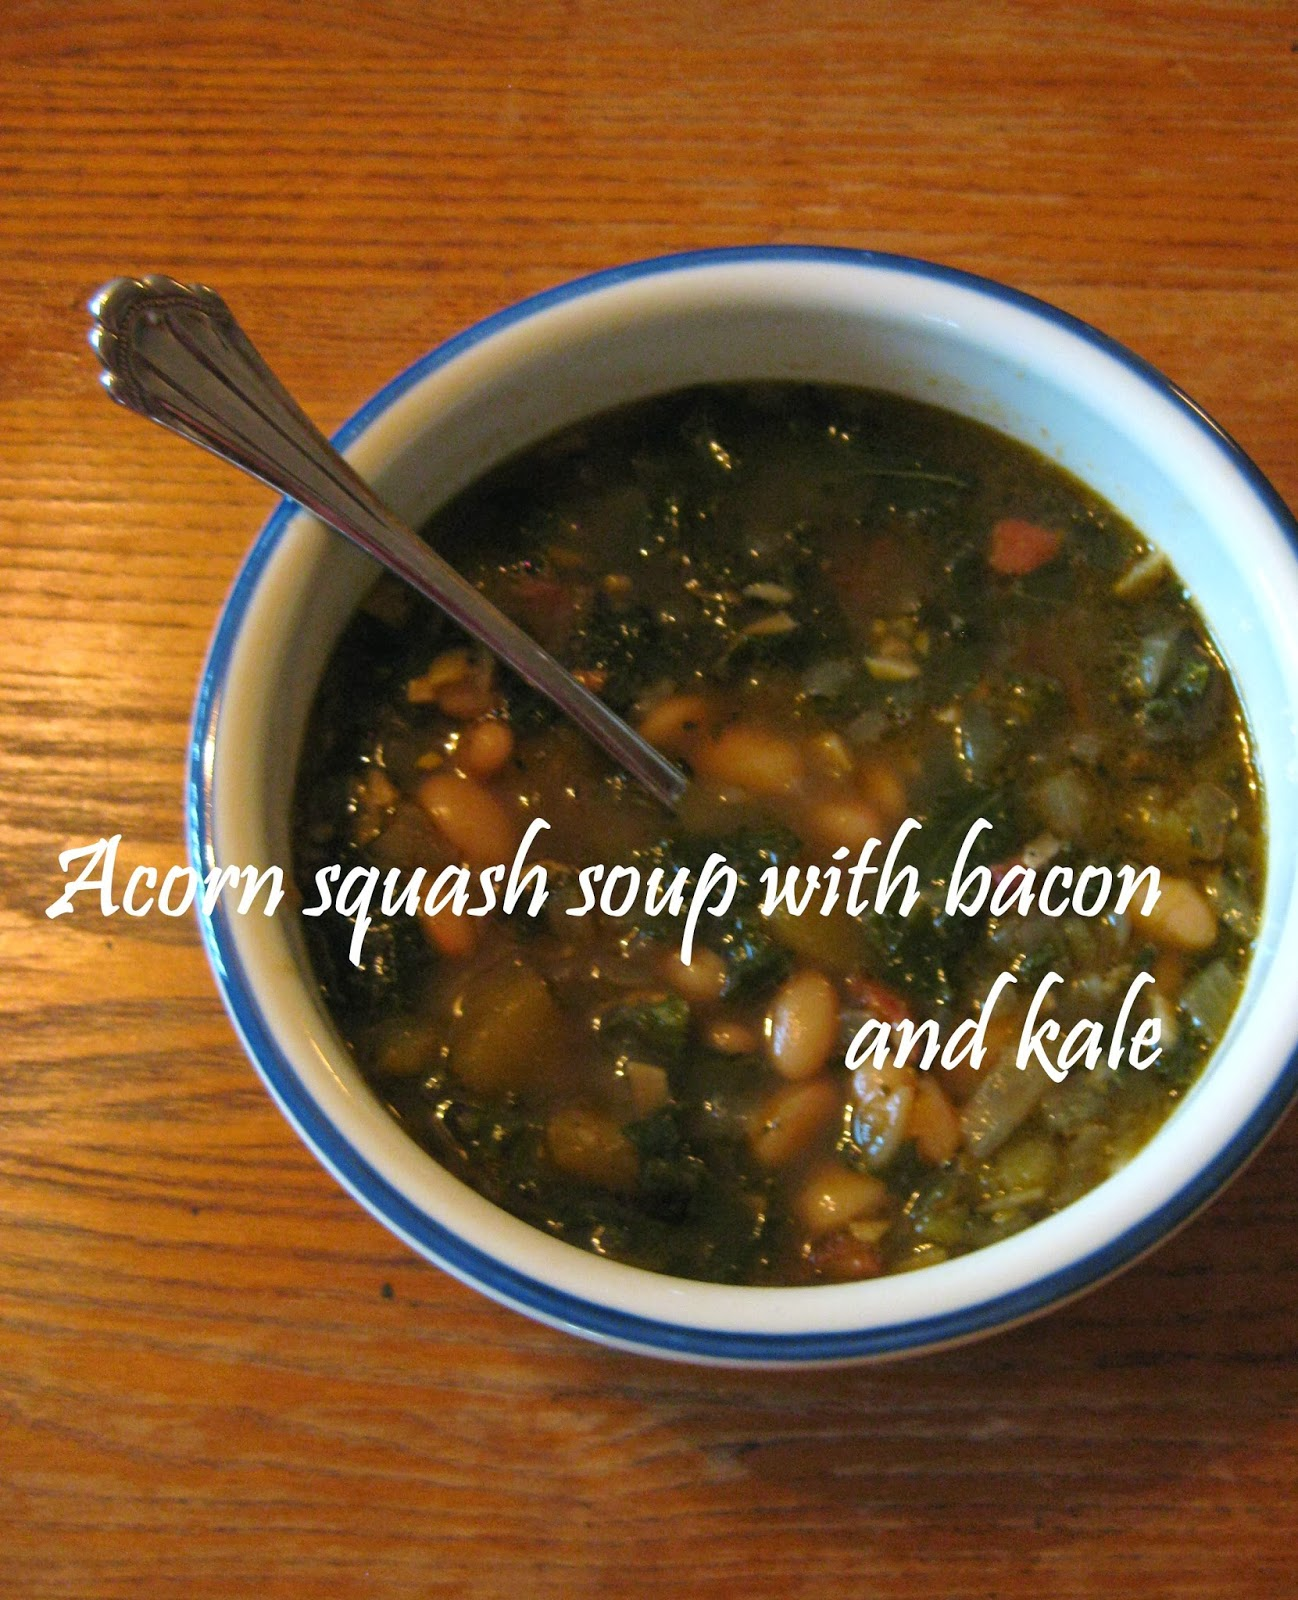 Homestyle Cooking: Acorn Squash Soup with Bacon and Kale